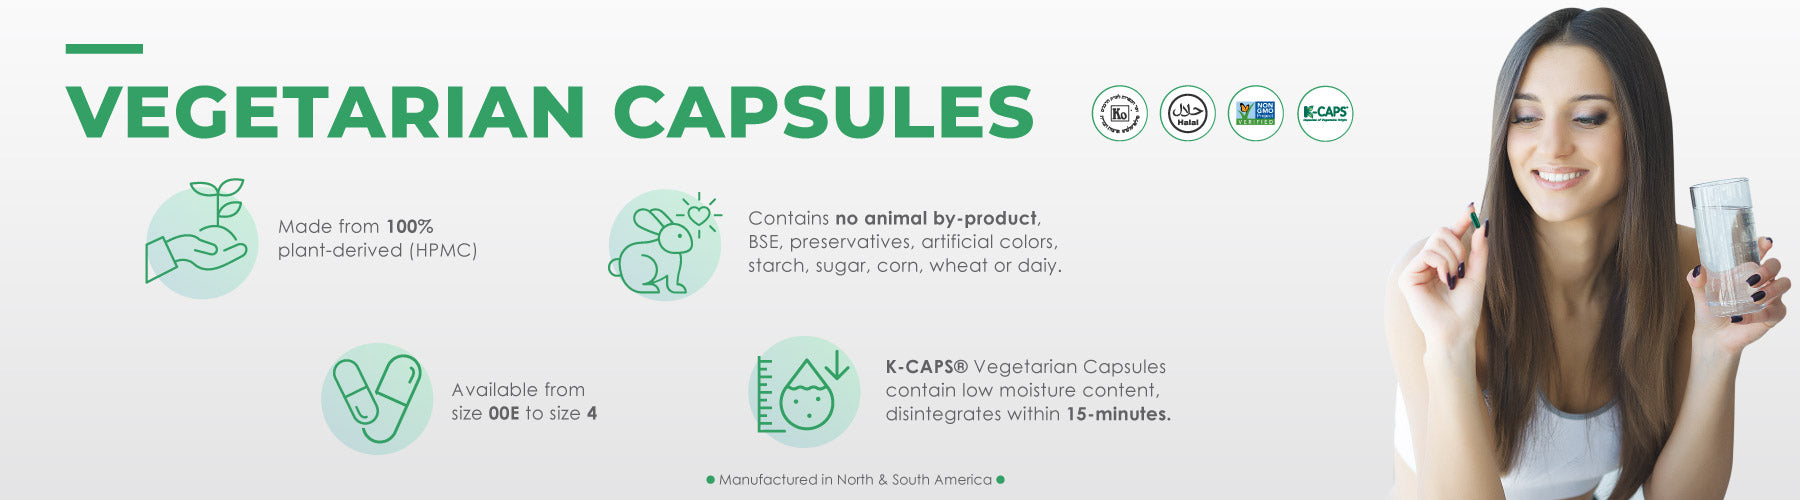 All Separated Vegetarian Capsules by Capsuline